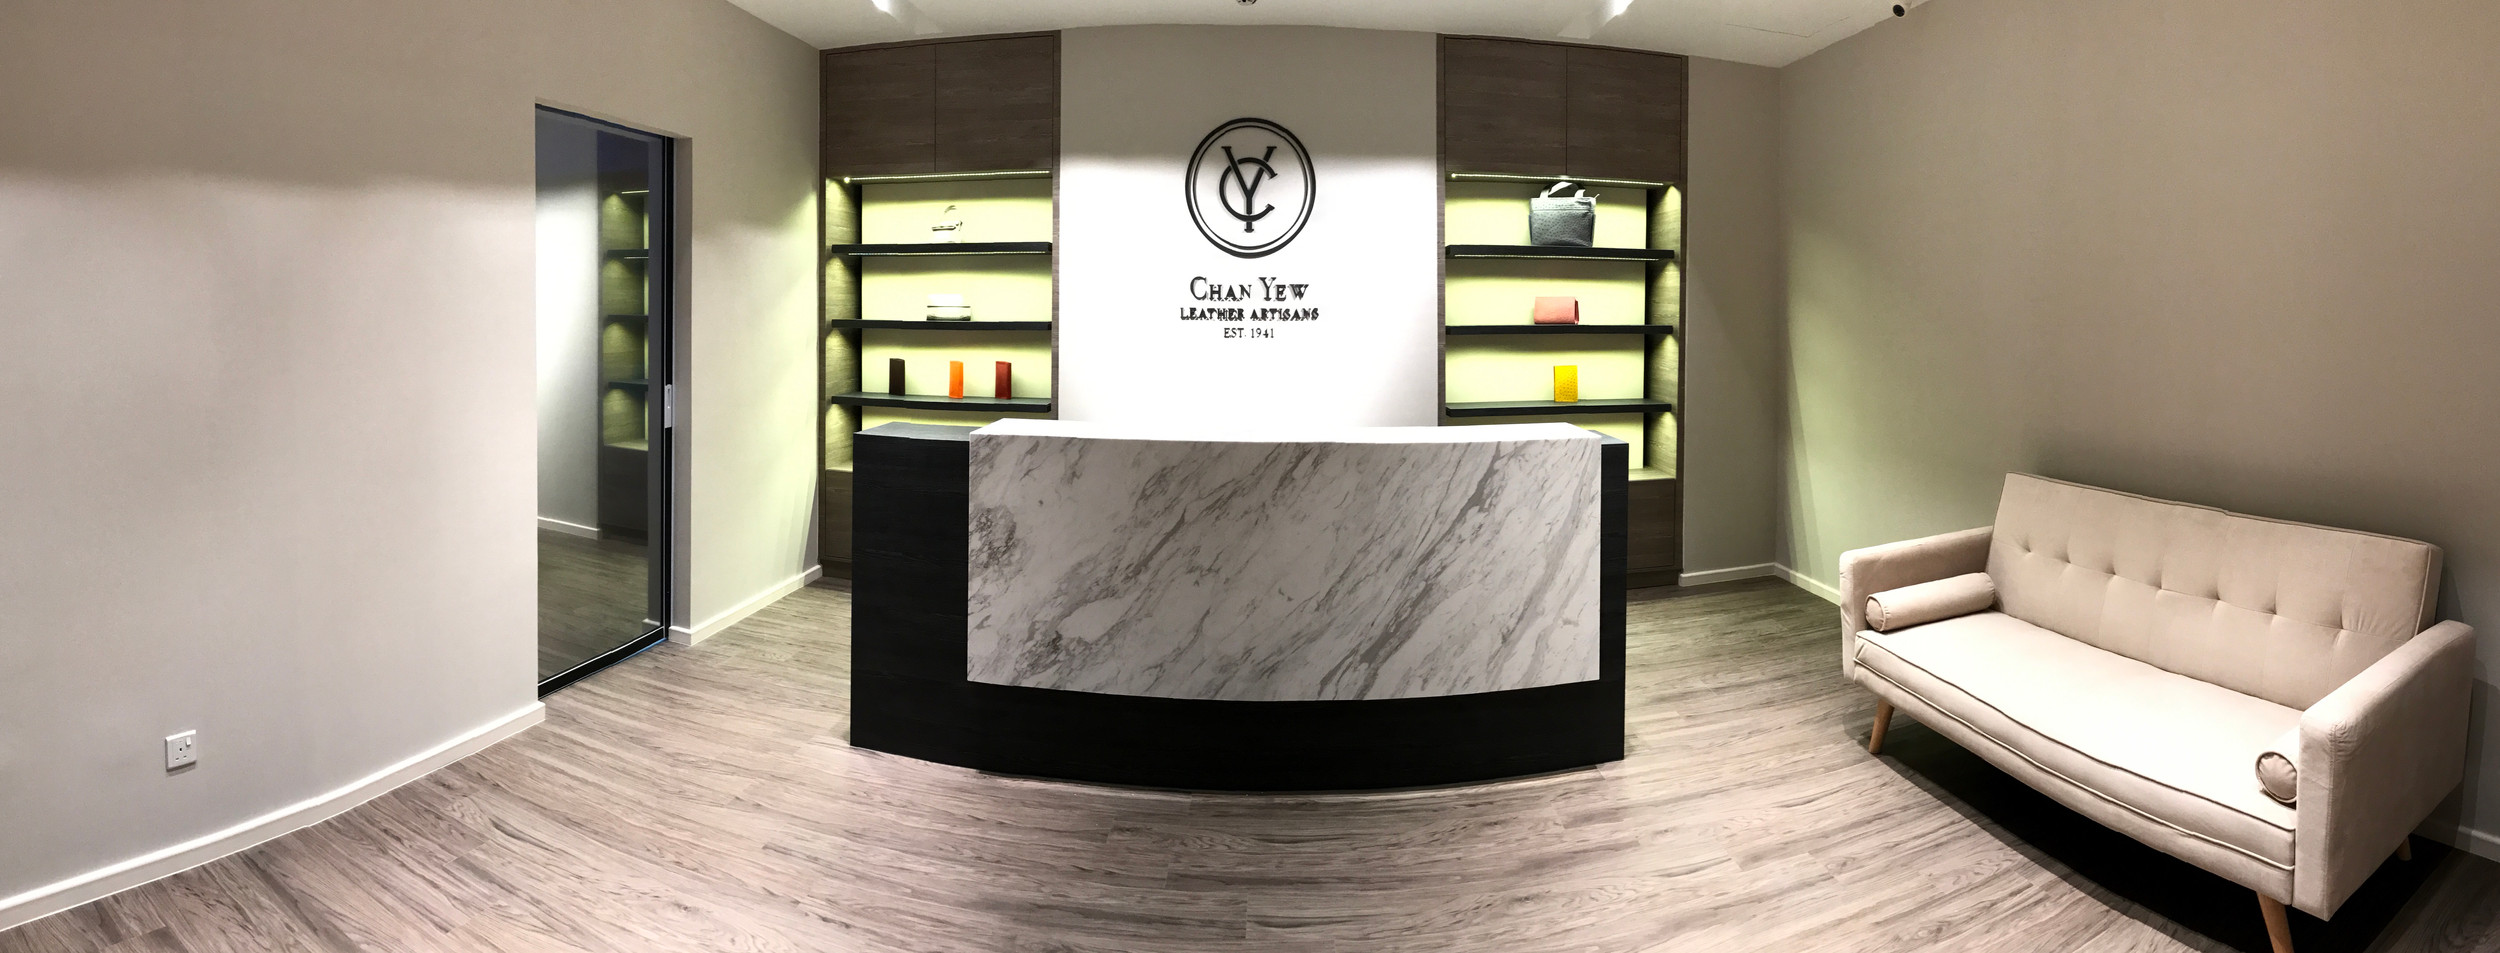 Chan Yew Leathers Singapore|Bespoke leather&repair|chanyewleathers com